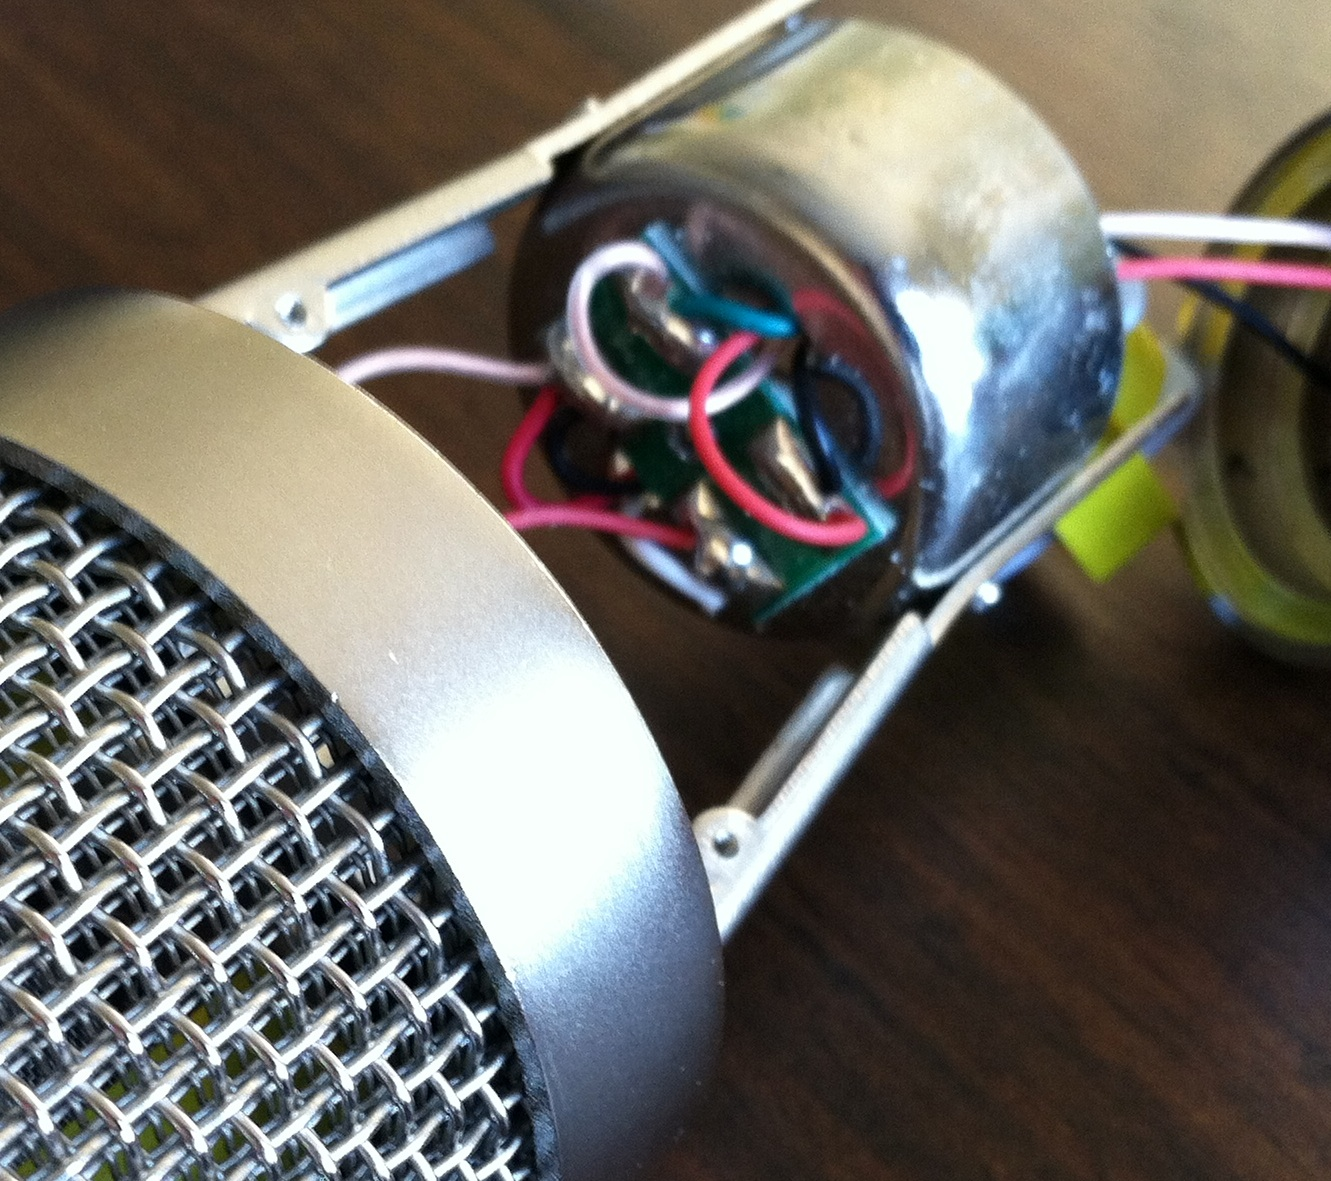 Updated So You Want A Good Cheap Ribbon Mic Upgrading The 6999 Condenser Microphone Diagram With